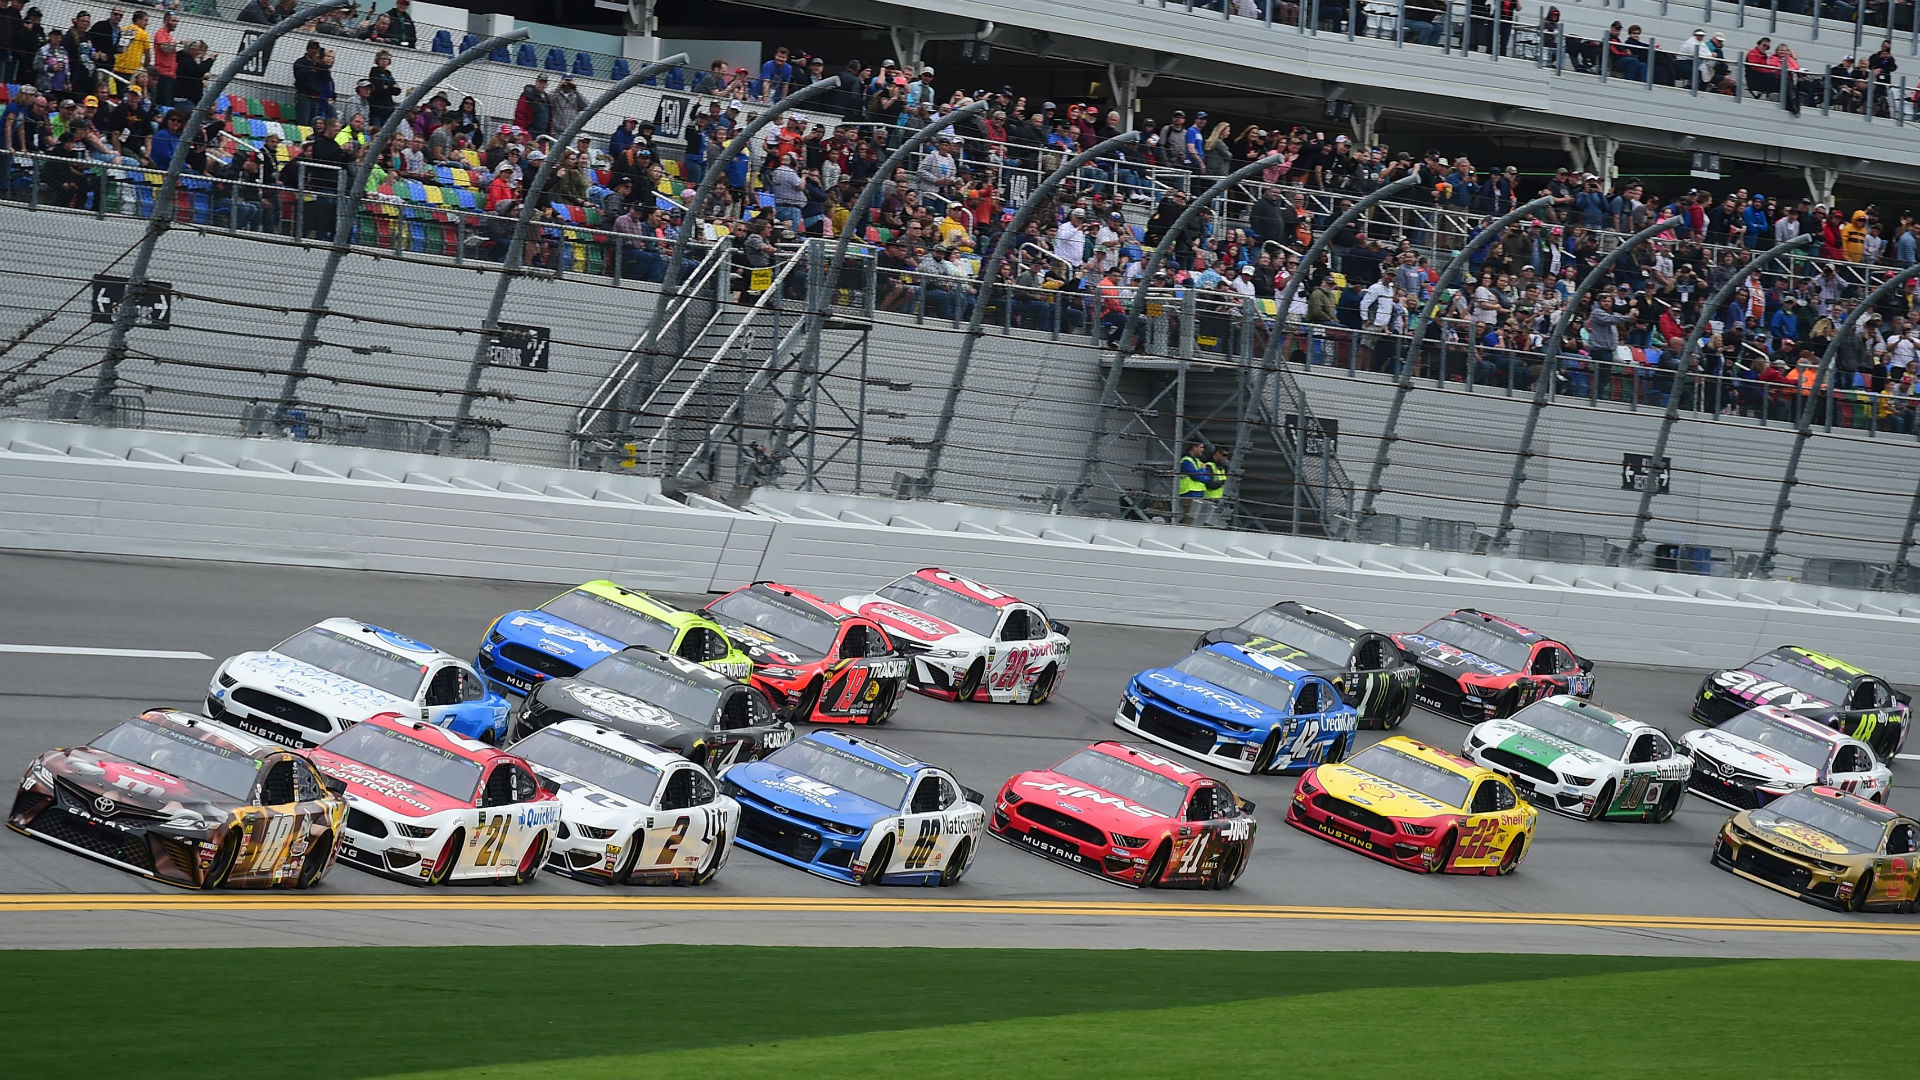 Wild NASCAR crash causes chaos at the Daytona 500